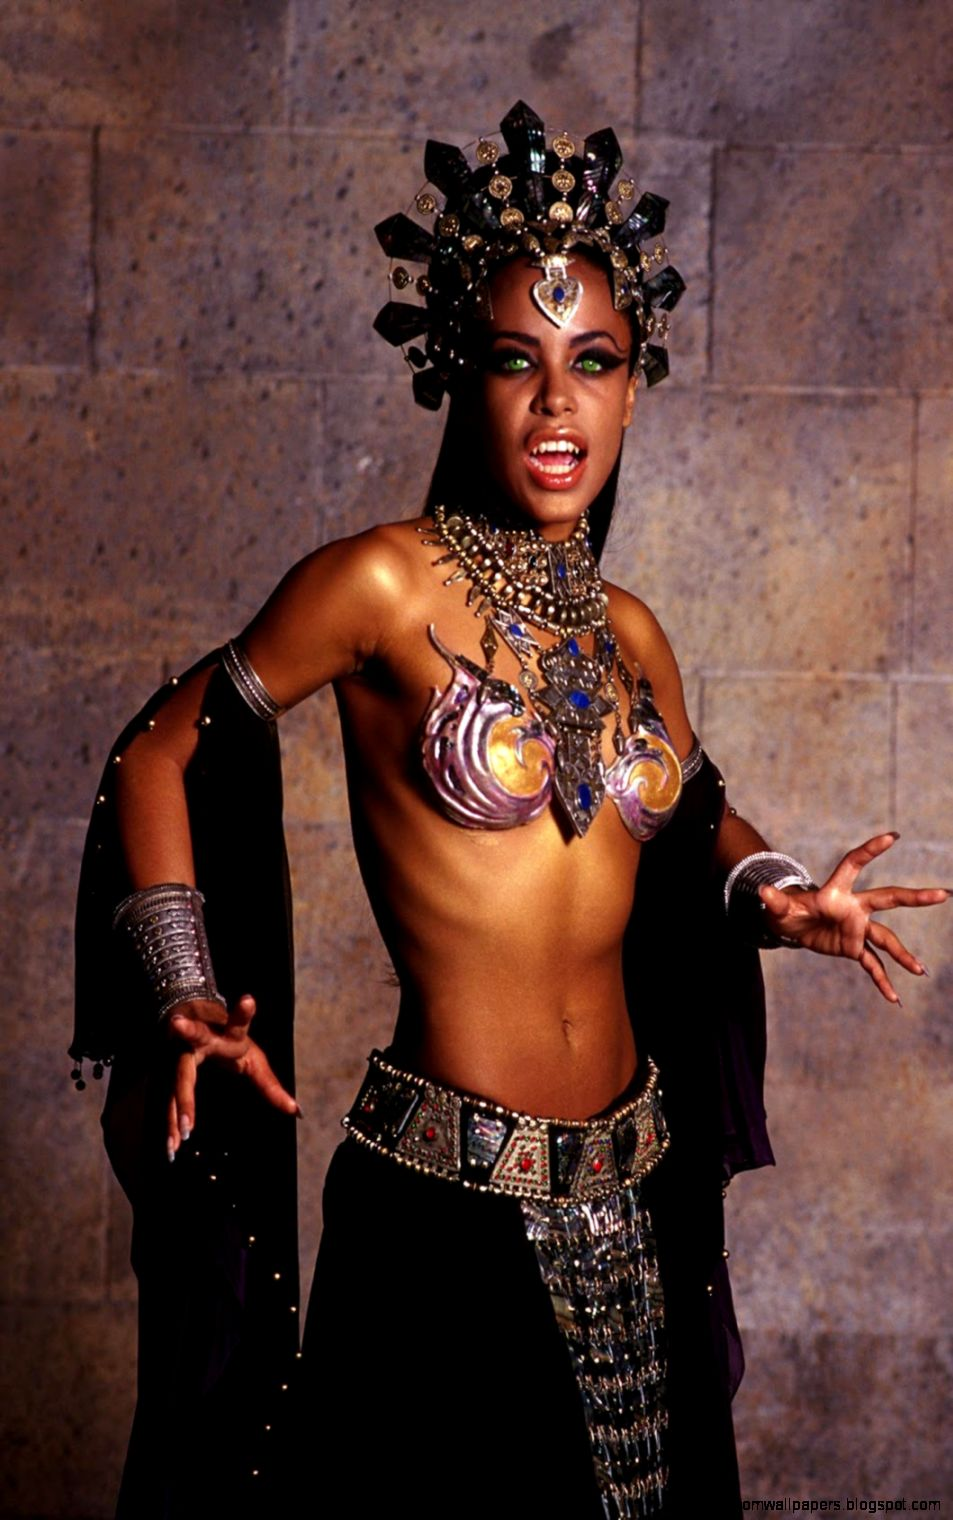 Aaliyah Body Zoom Wallpapers